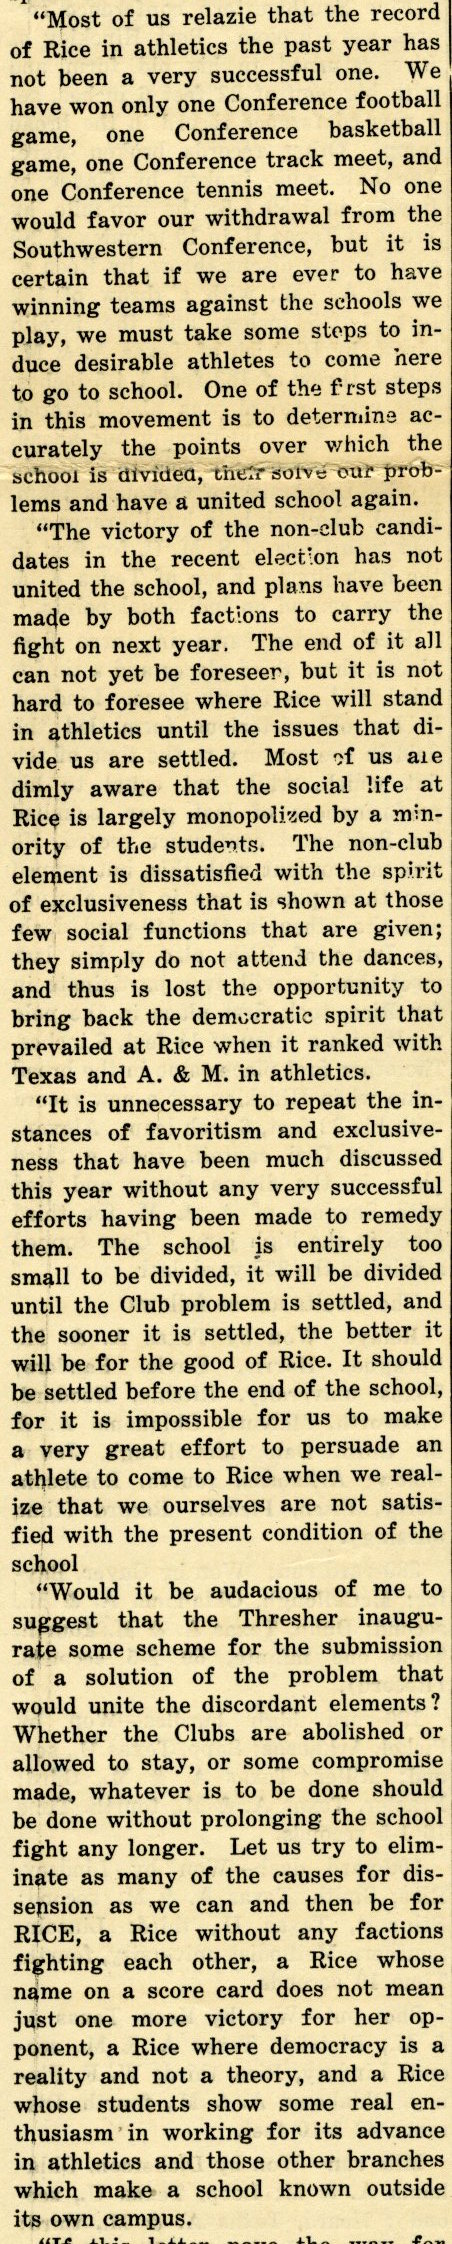 toilers-letter-to-thresher-may-19-1922-049